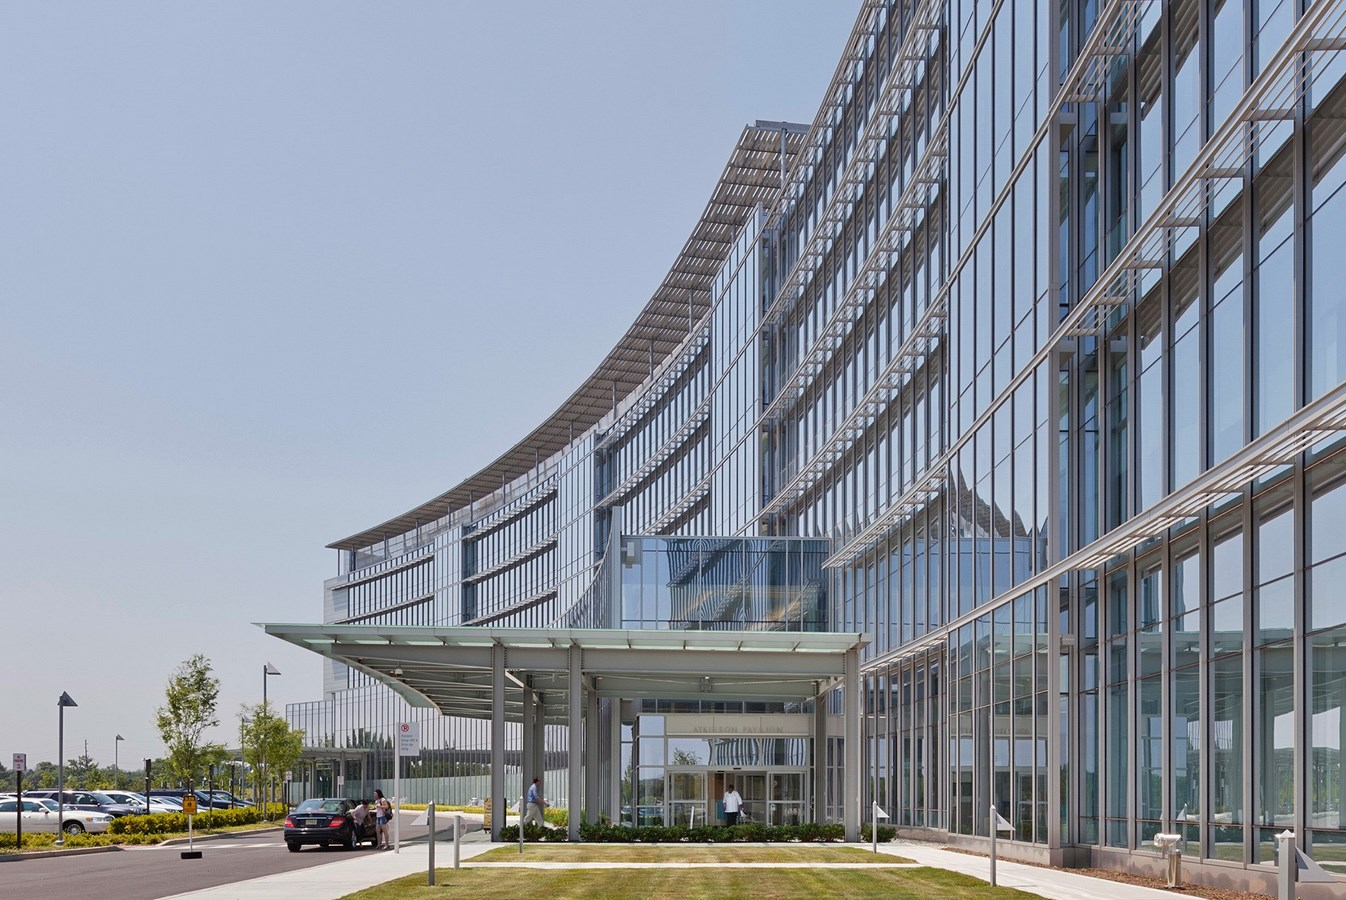 15 Projects by HOK Architects every Architect should know about - Penn Medicine – Princeton Medical Center